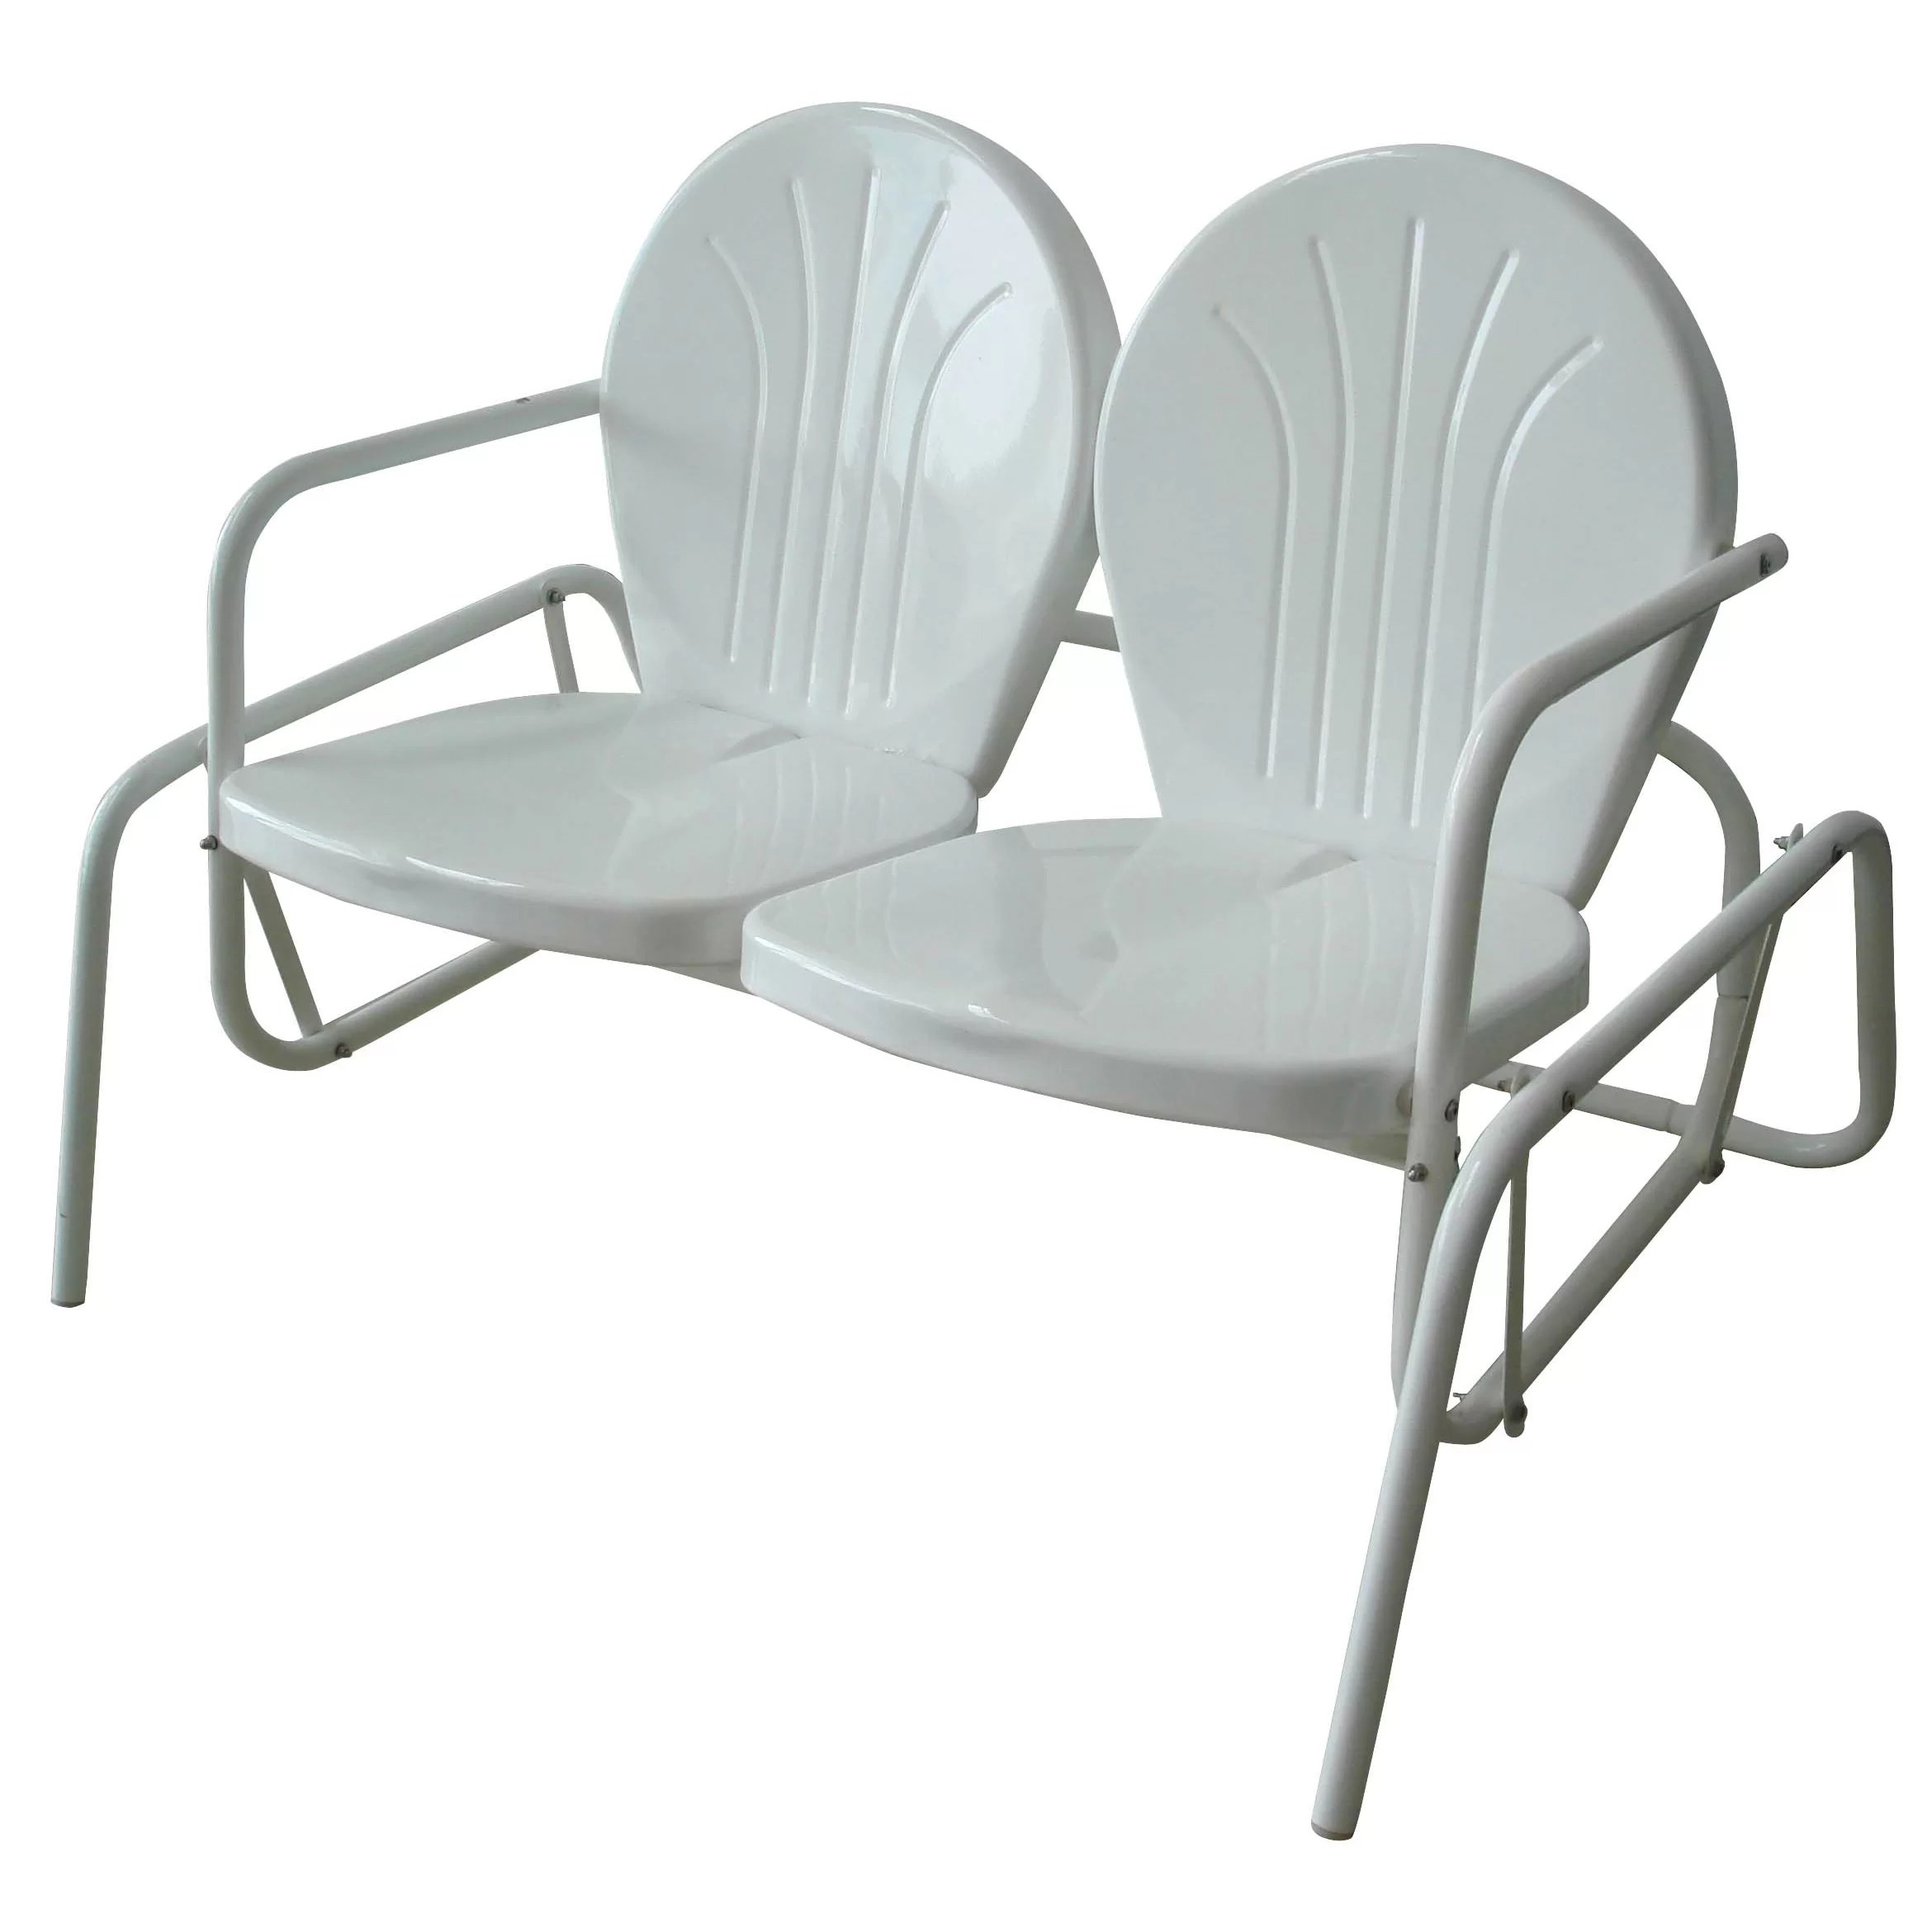 Double Seat Chair Buffalo Tools Amerihome Double Seat Glider Chair And Reviews